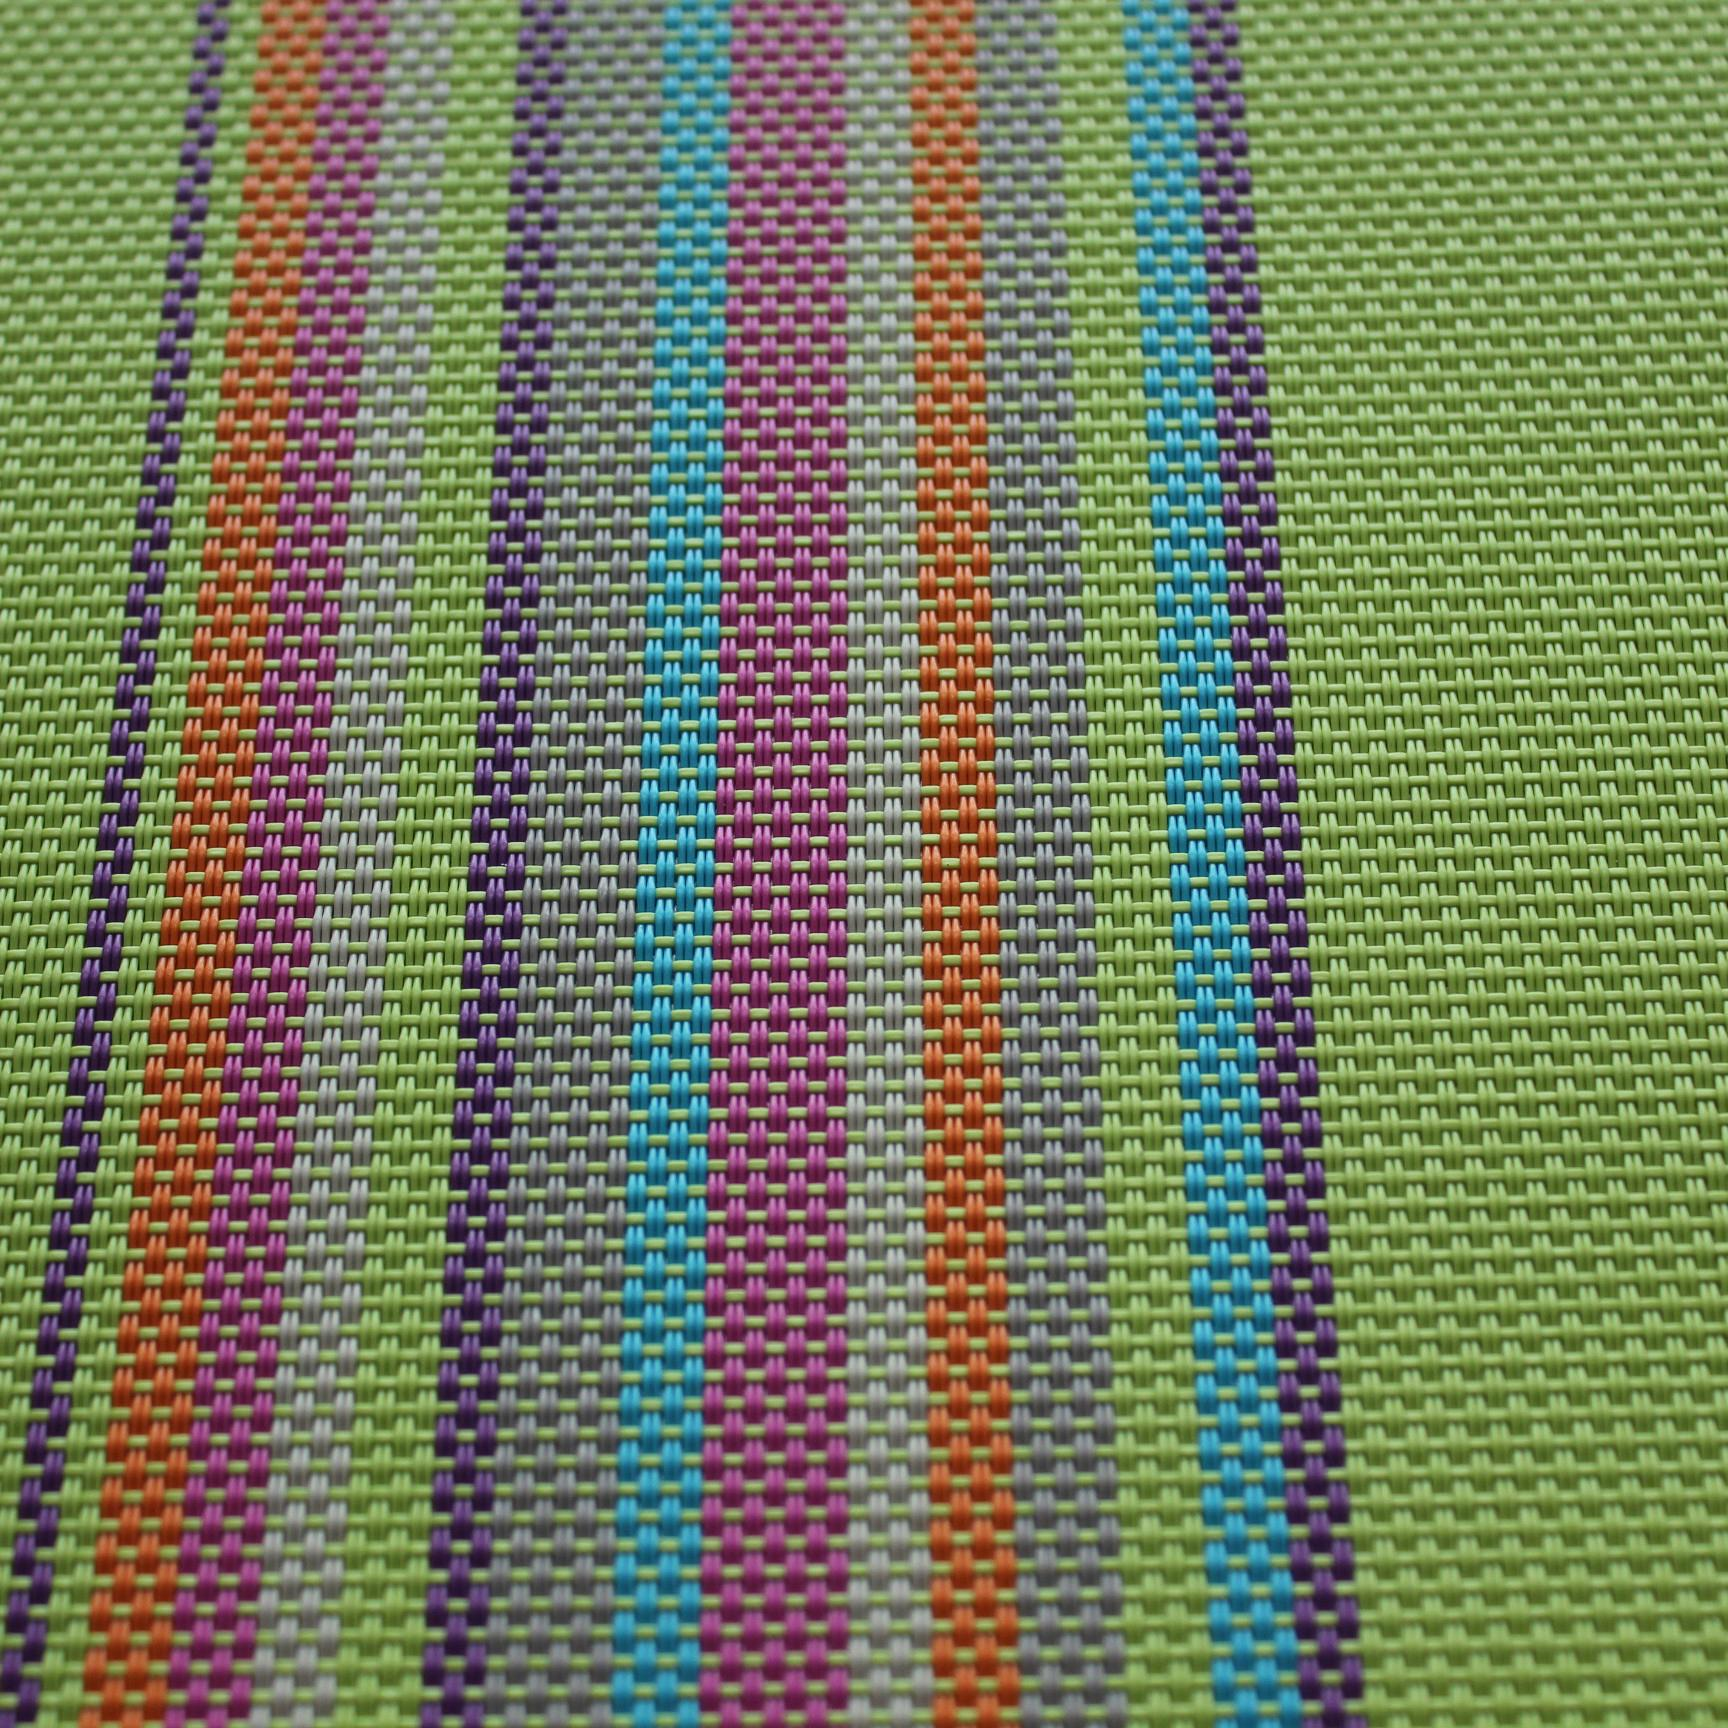 Pvc Woven Coated Fabric 21618 1